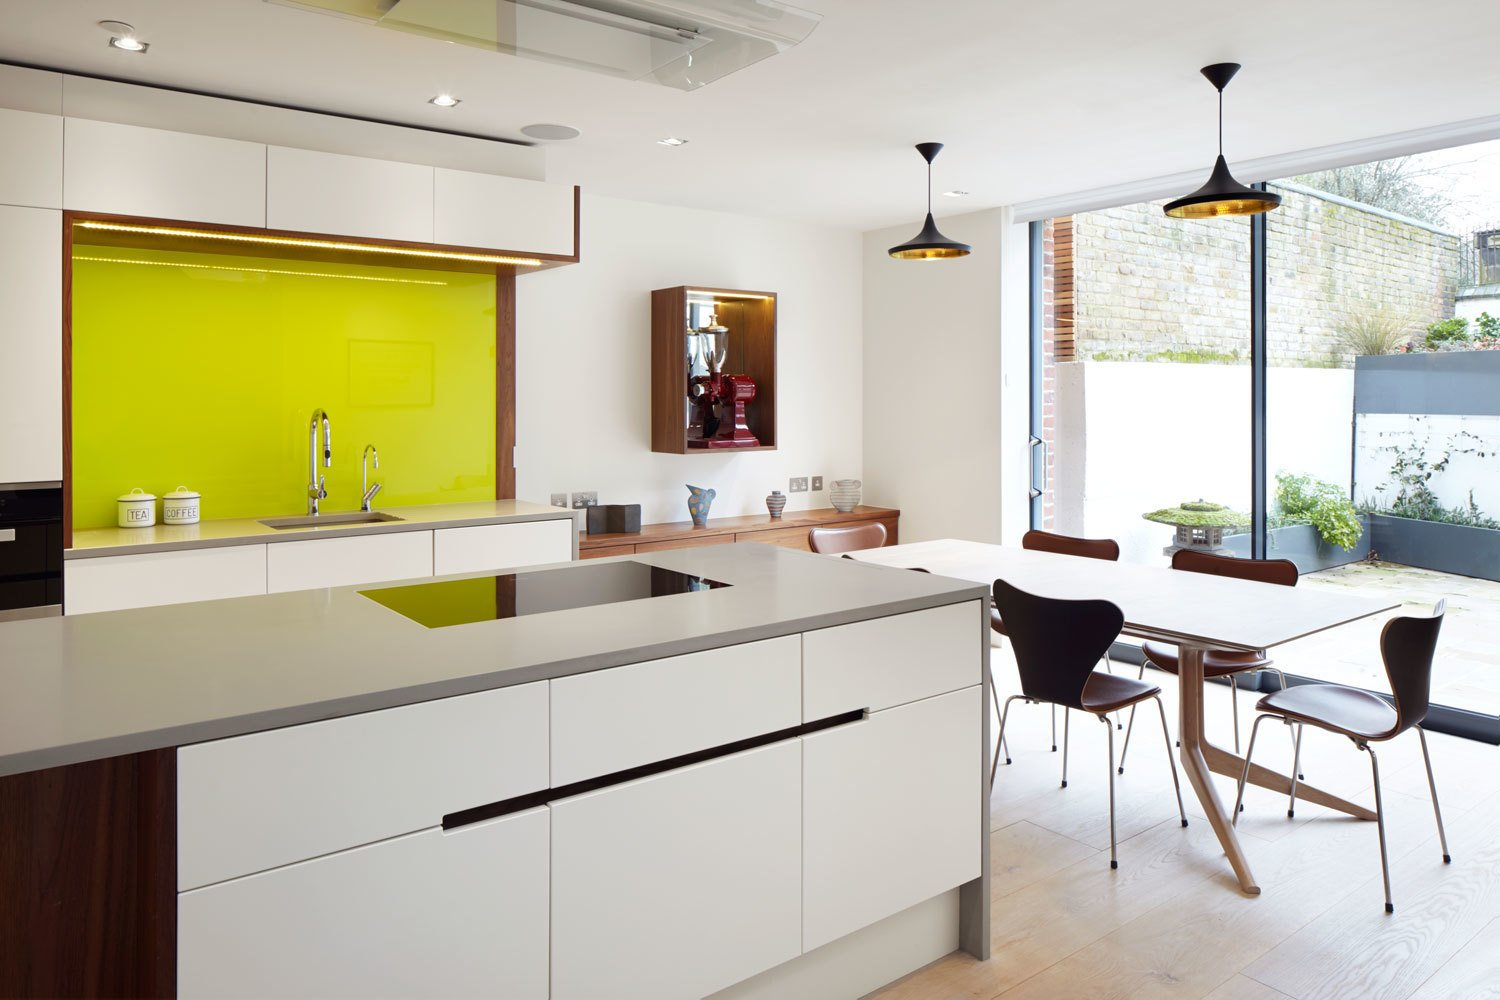 Articles about 5 modern kitchen design inspirations part two on Dwell.com